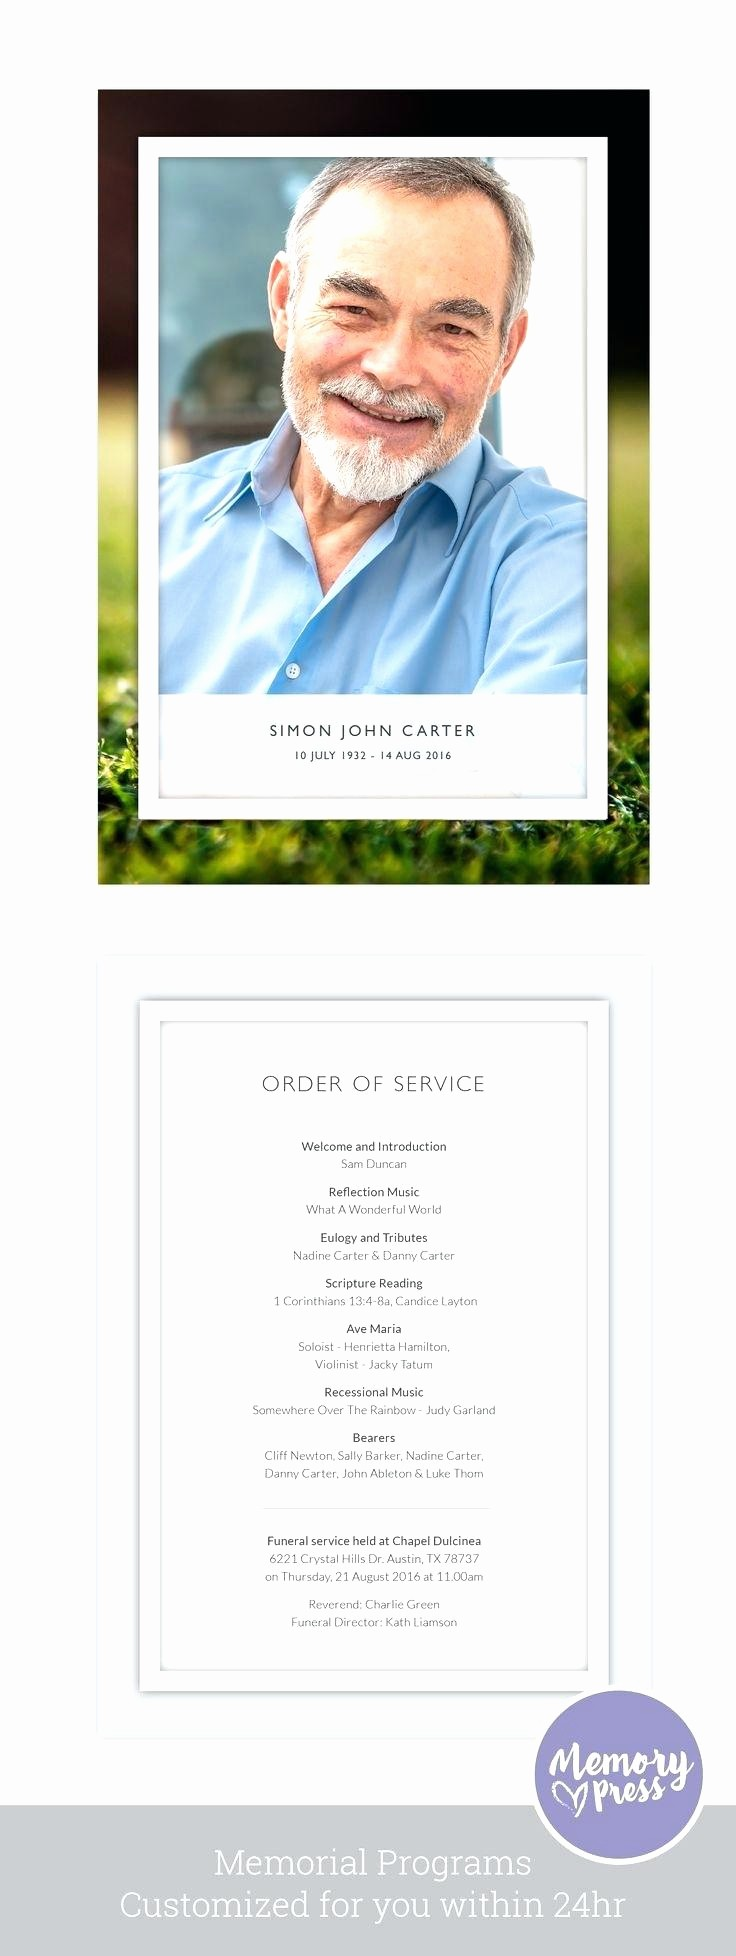 Funeral Program Template Word 2010 Beautiful Funeral Service Booklet Template